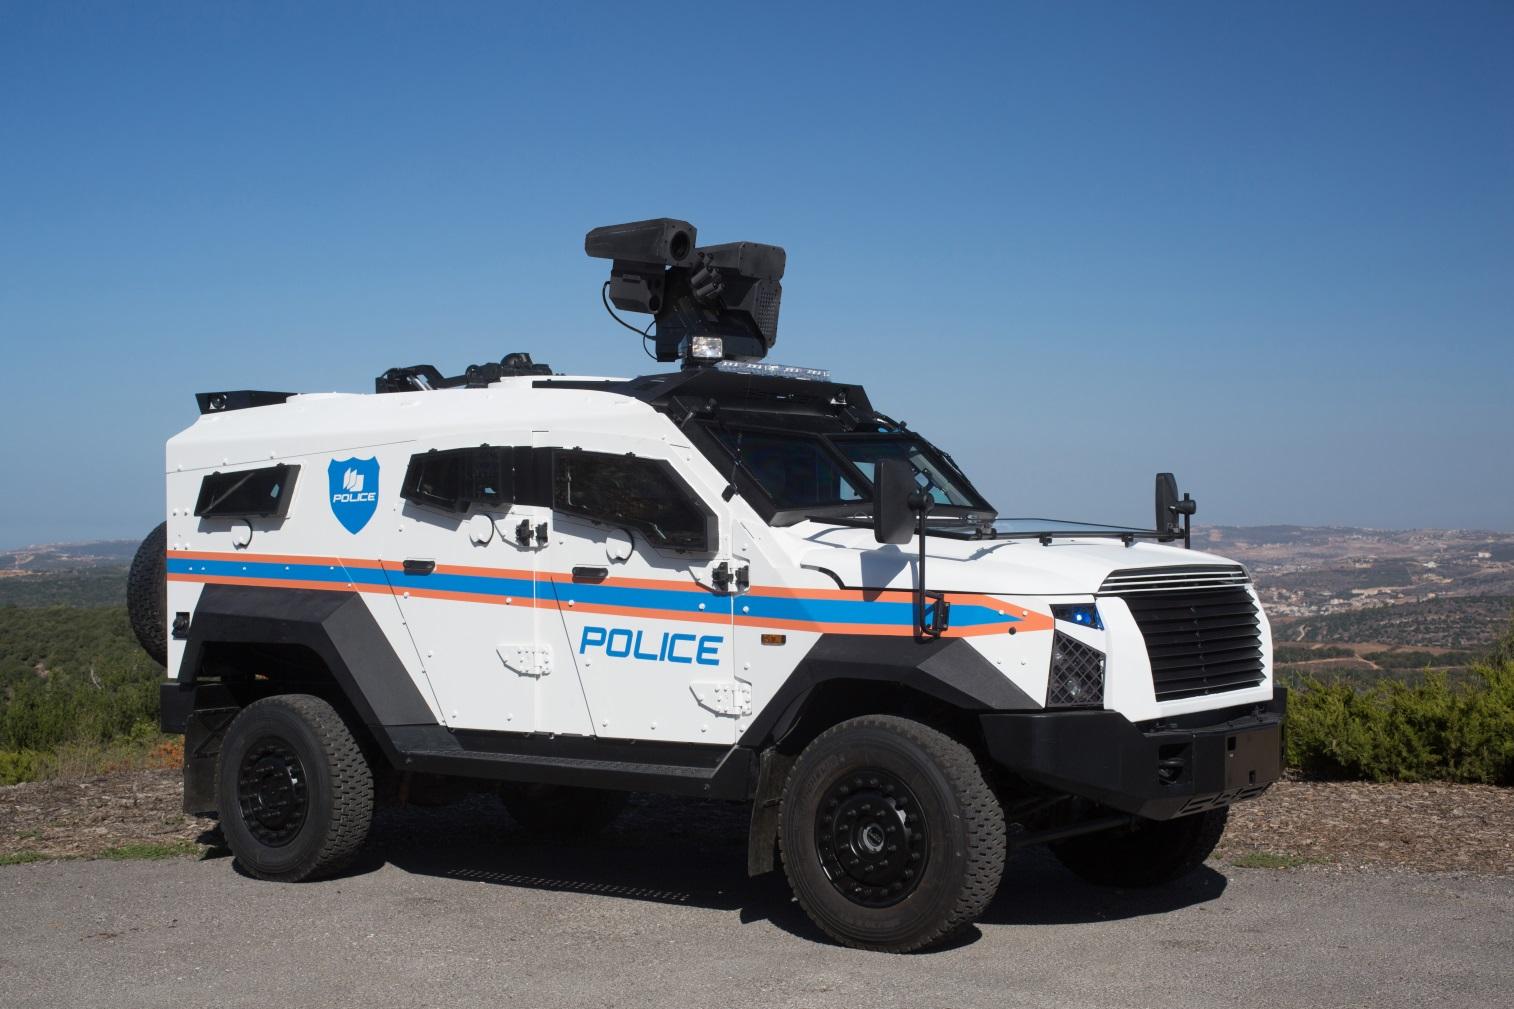 SandCat Stormer Armored SUV Designed to Fight Terror